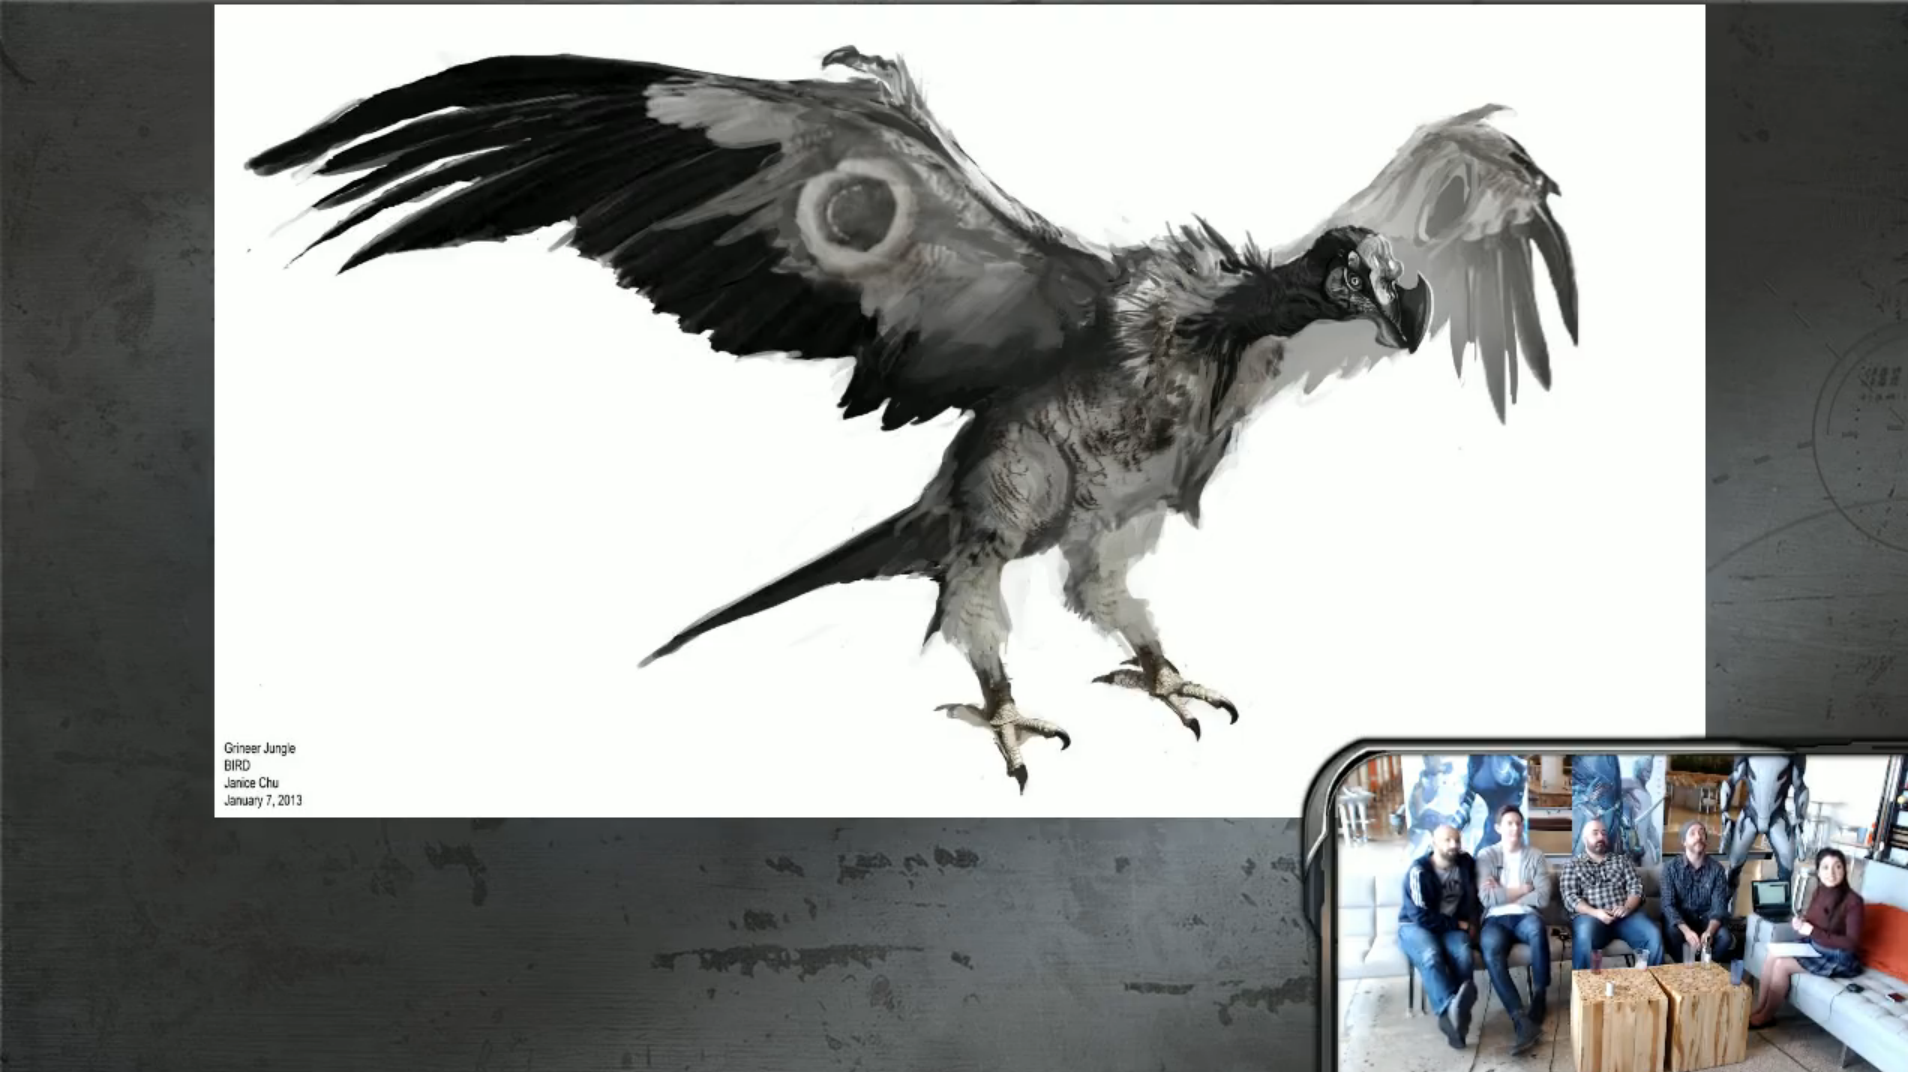 03_-_Upcoming_bird-type_enemy_for_the_ju